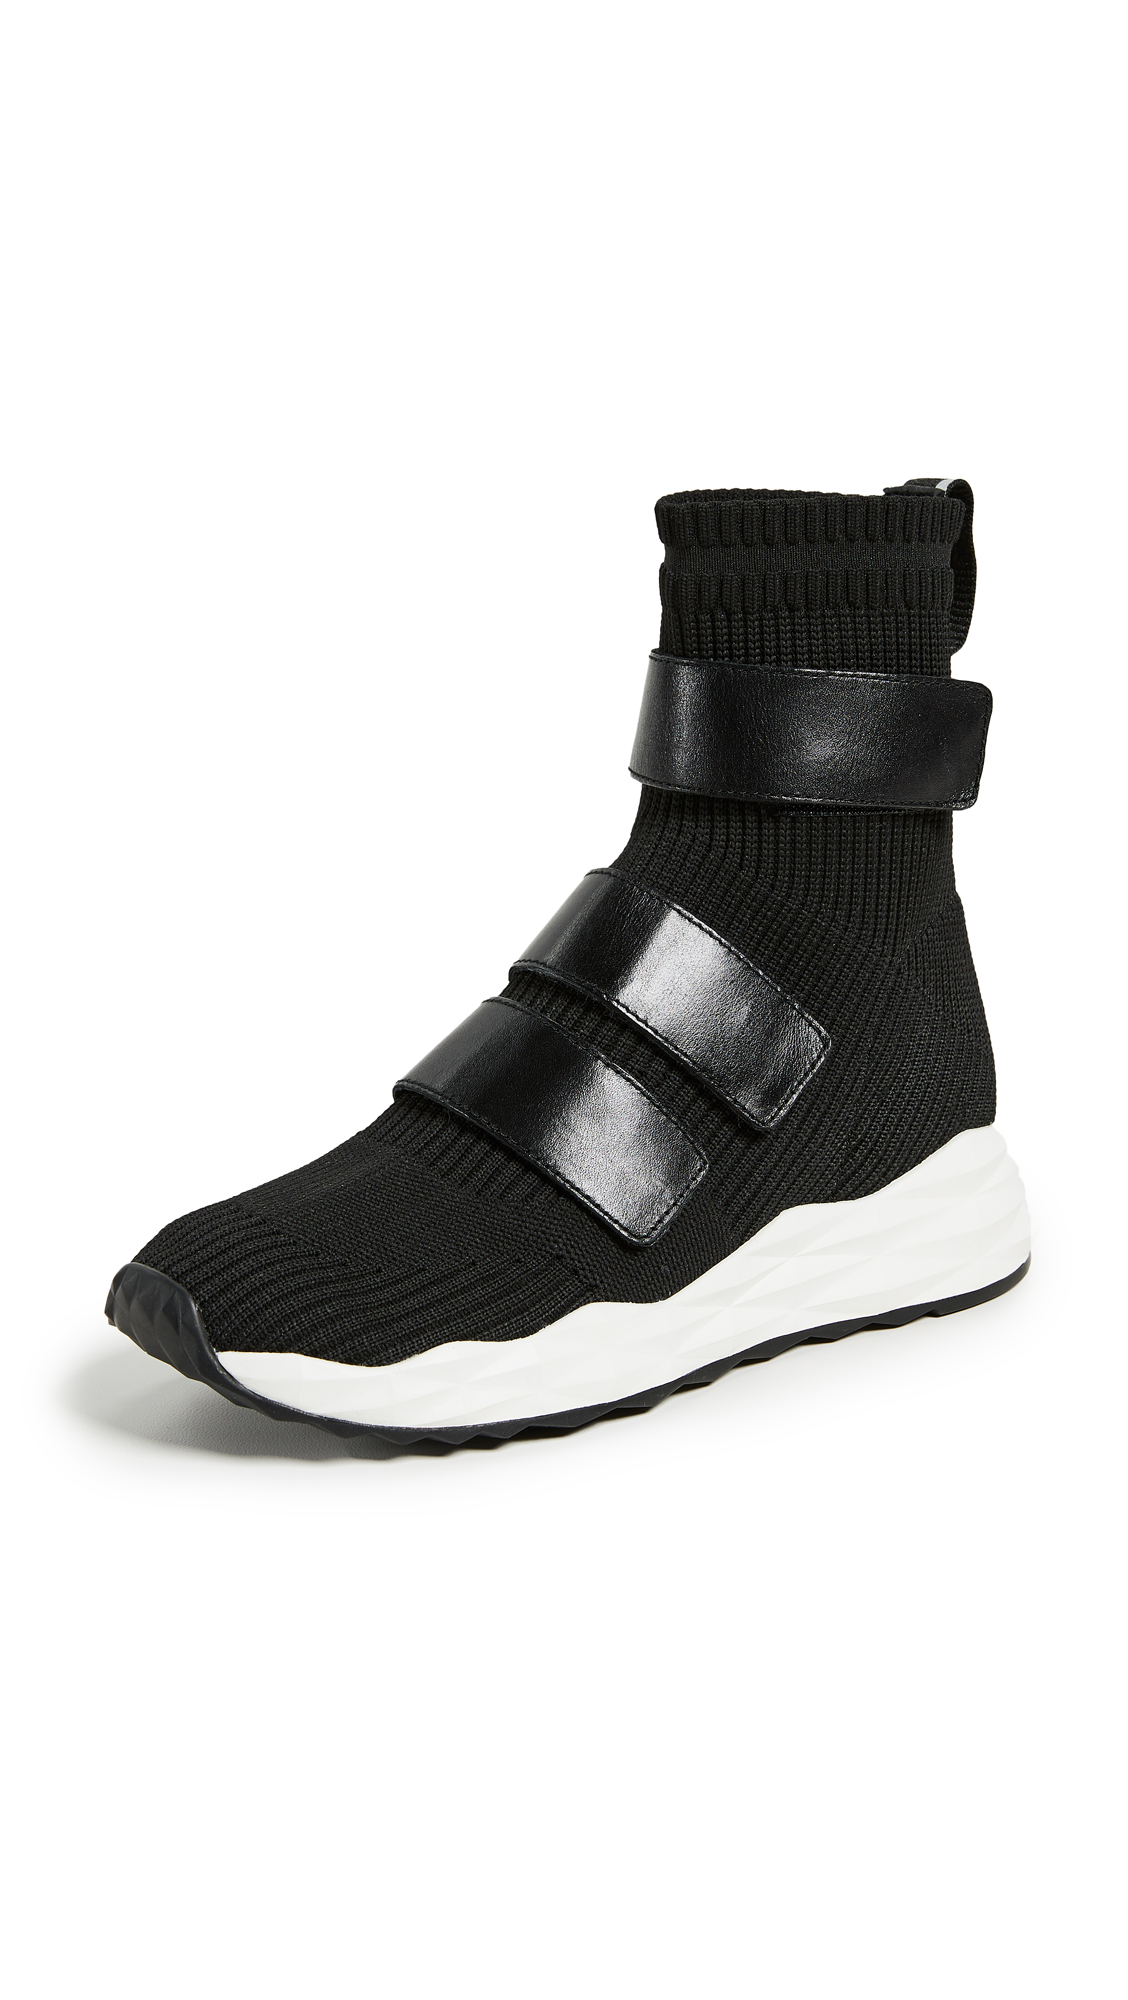 Ash Strut Knit Runners - Black/Black